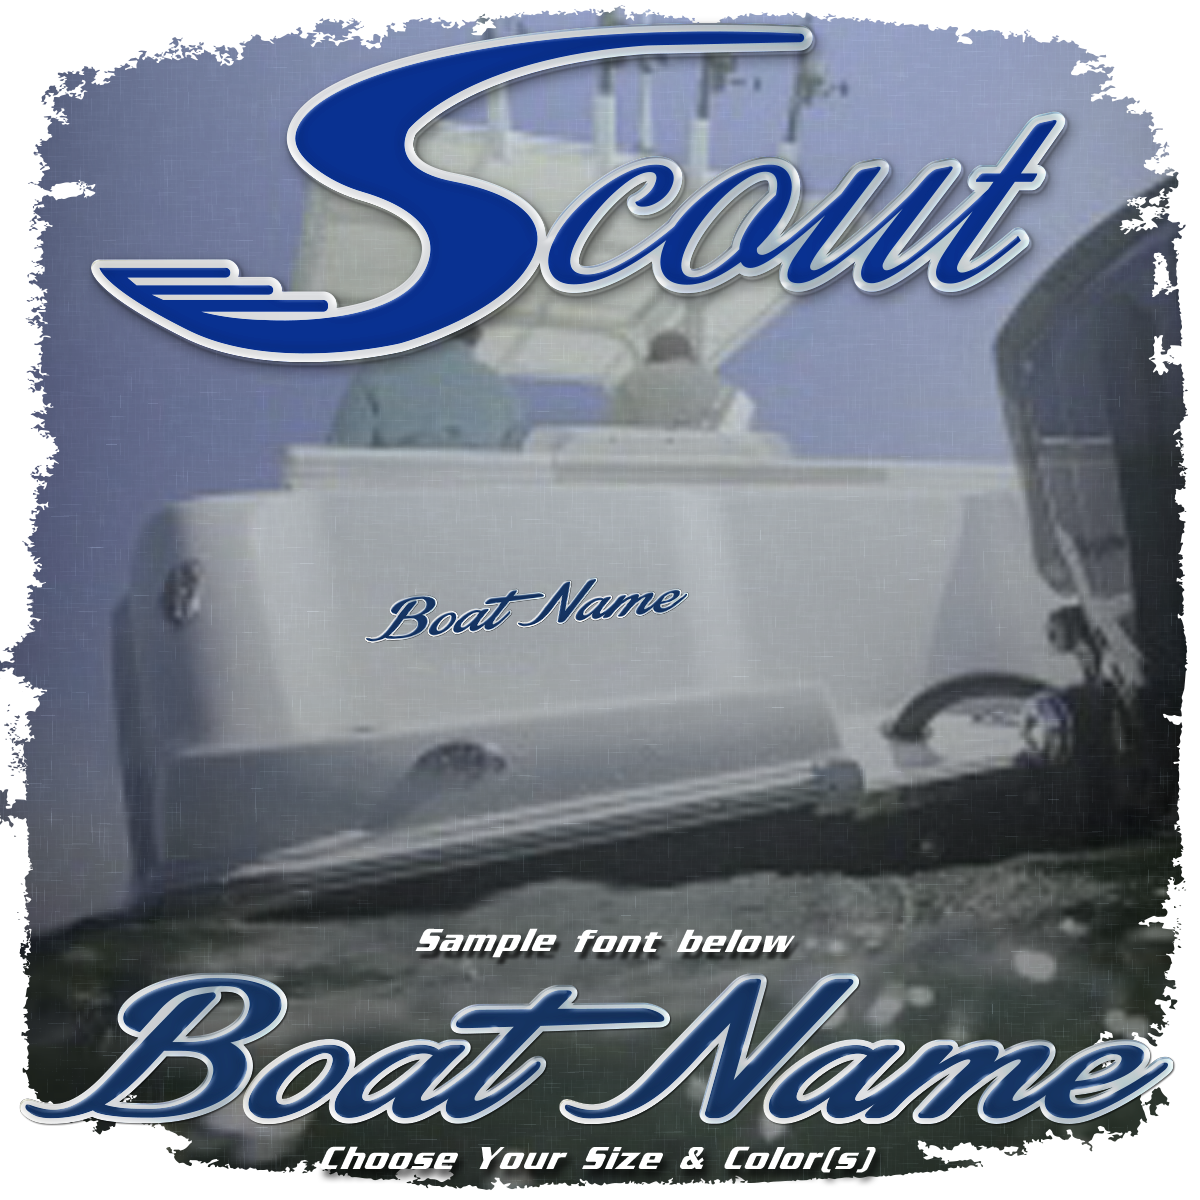 Domed Boat Name in the Scout Font, Choose Your Own Colors